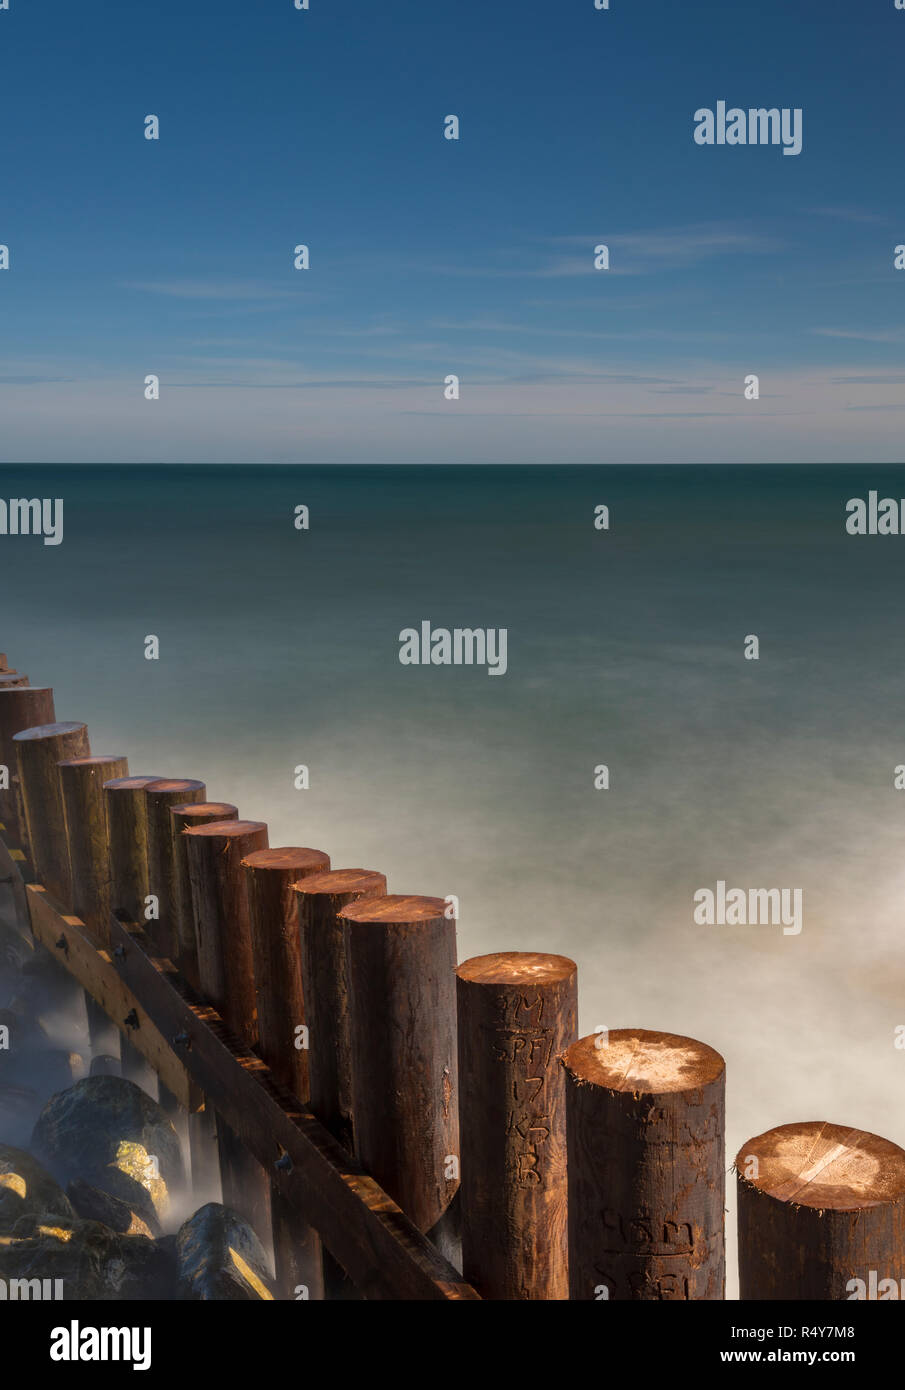 isle of wight costal seascape with groynes and breakwaters and calm seas - Stock Image